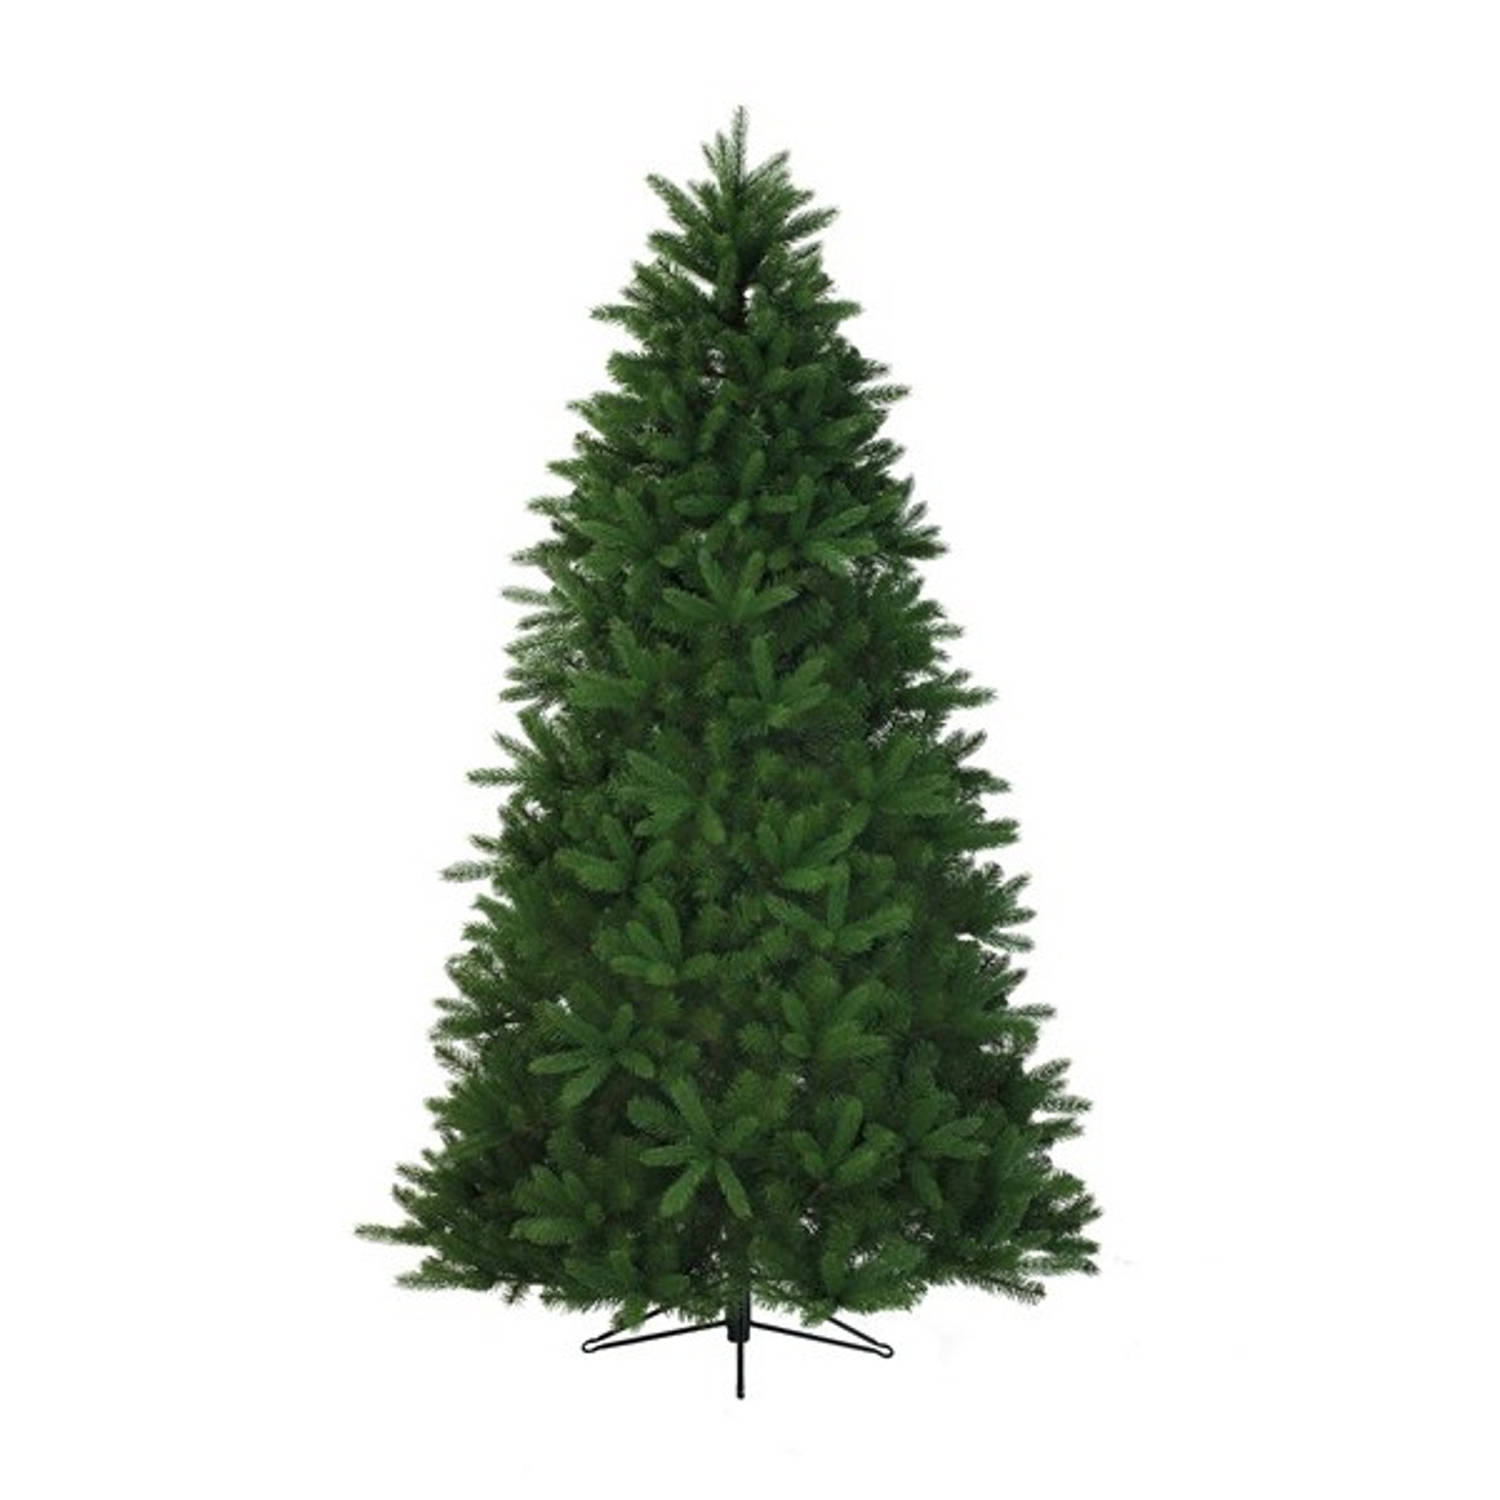 Kerstboom Everlands Bergen Spruce EasySU 150